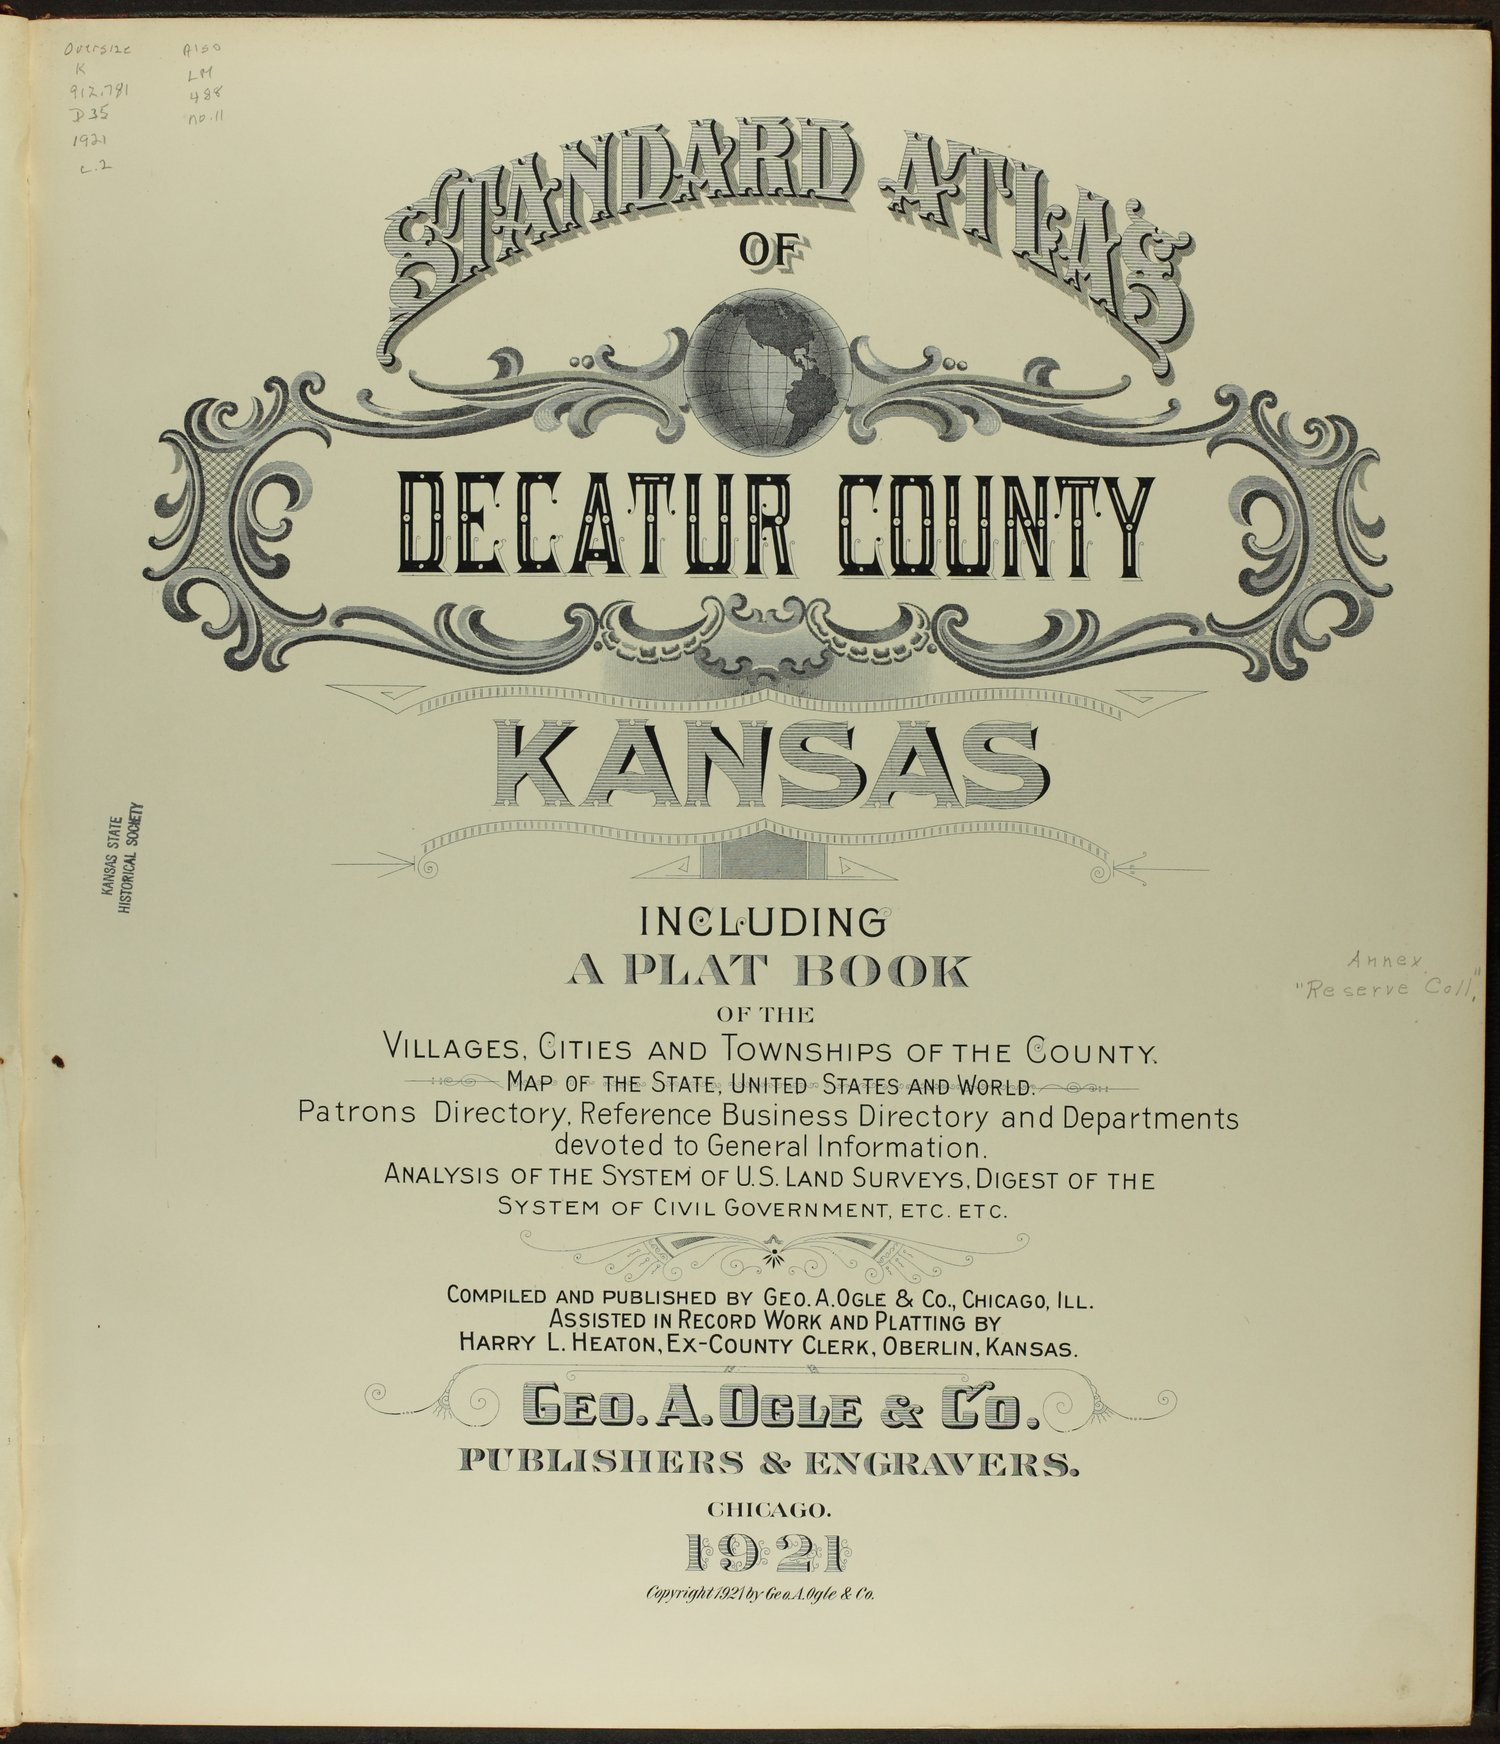 Standard atlas of Decatur County, Kansas - Title page